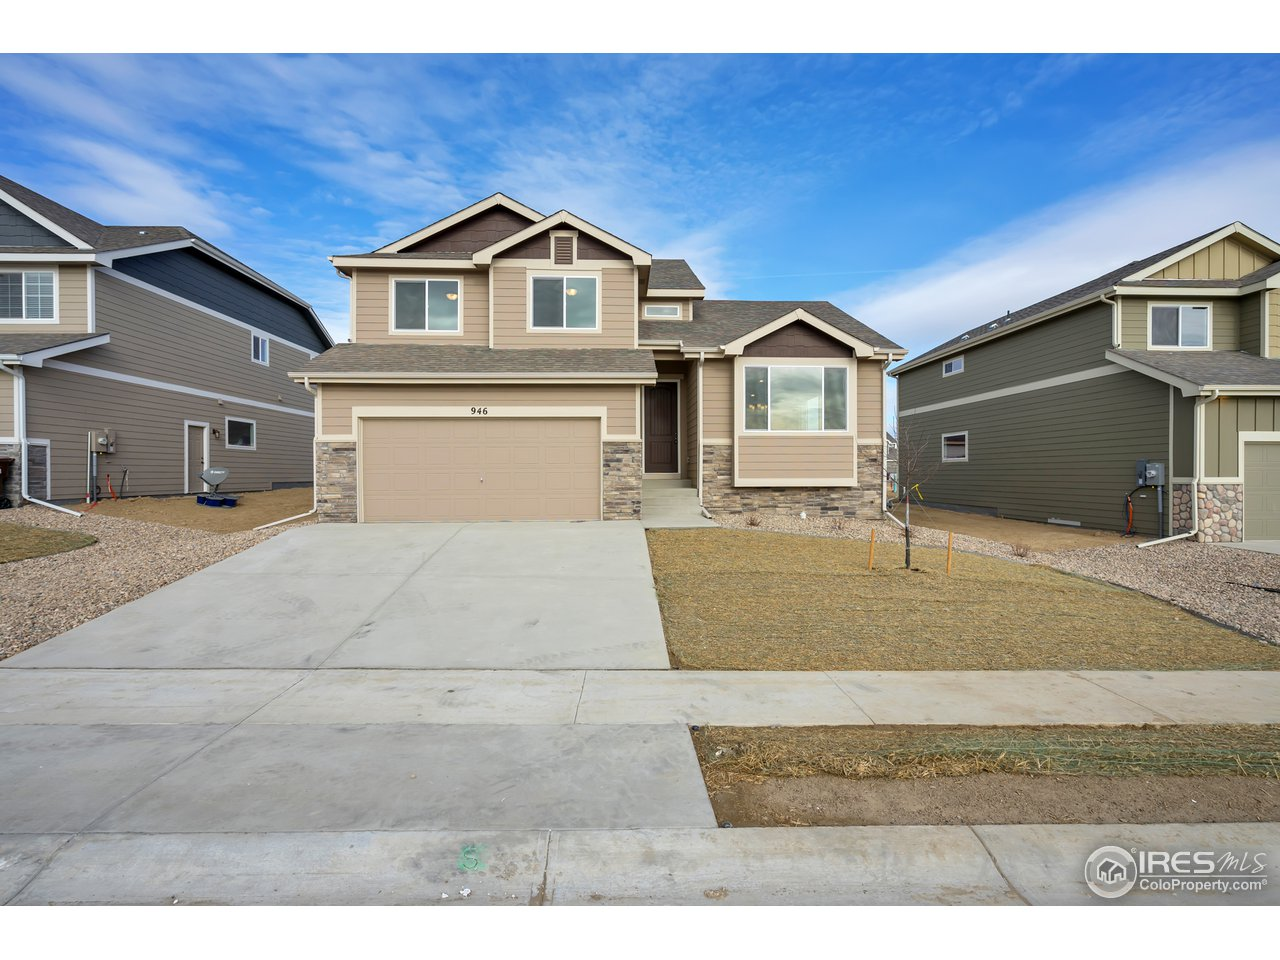 8771 16th St, Greeley CO 80634